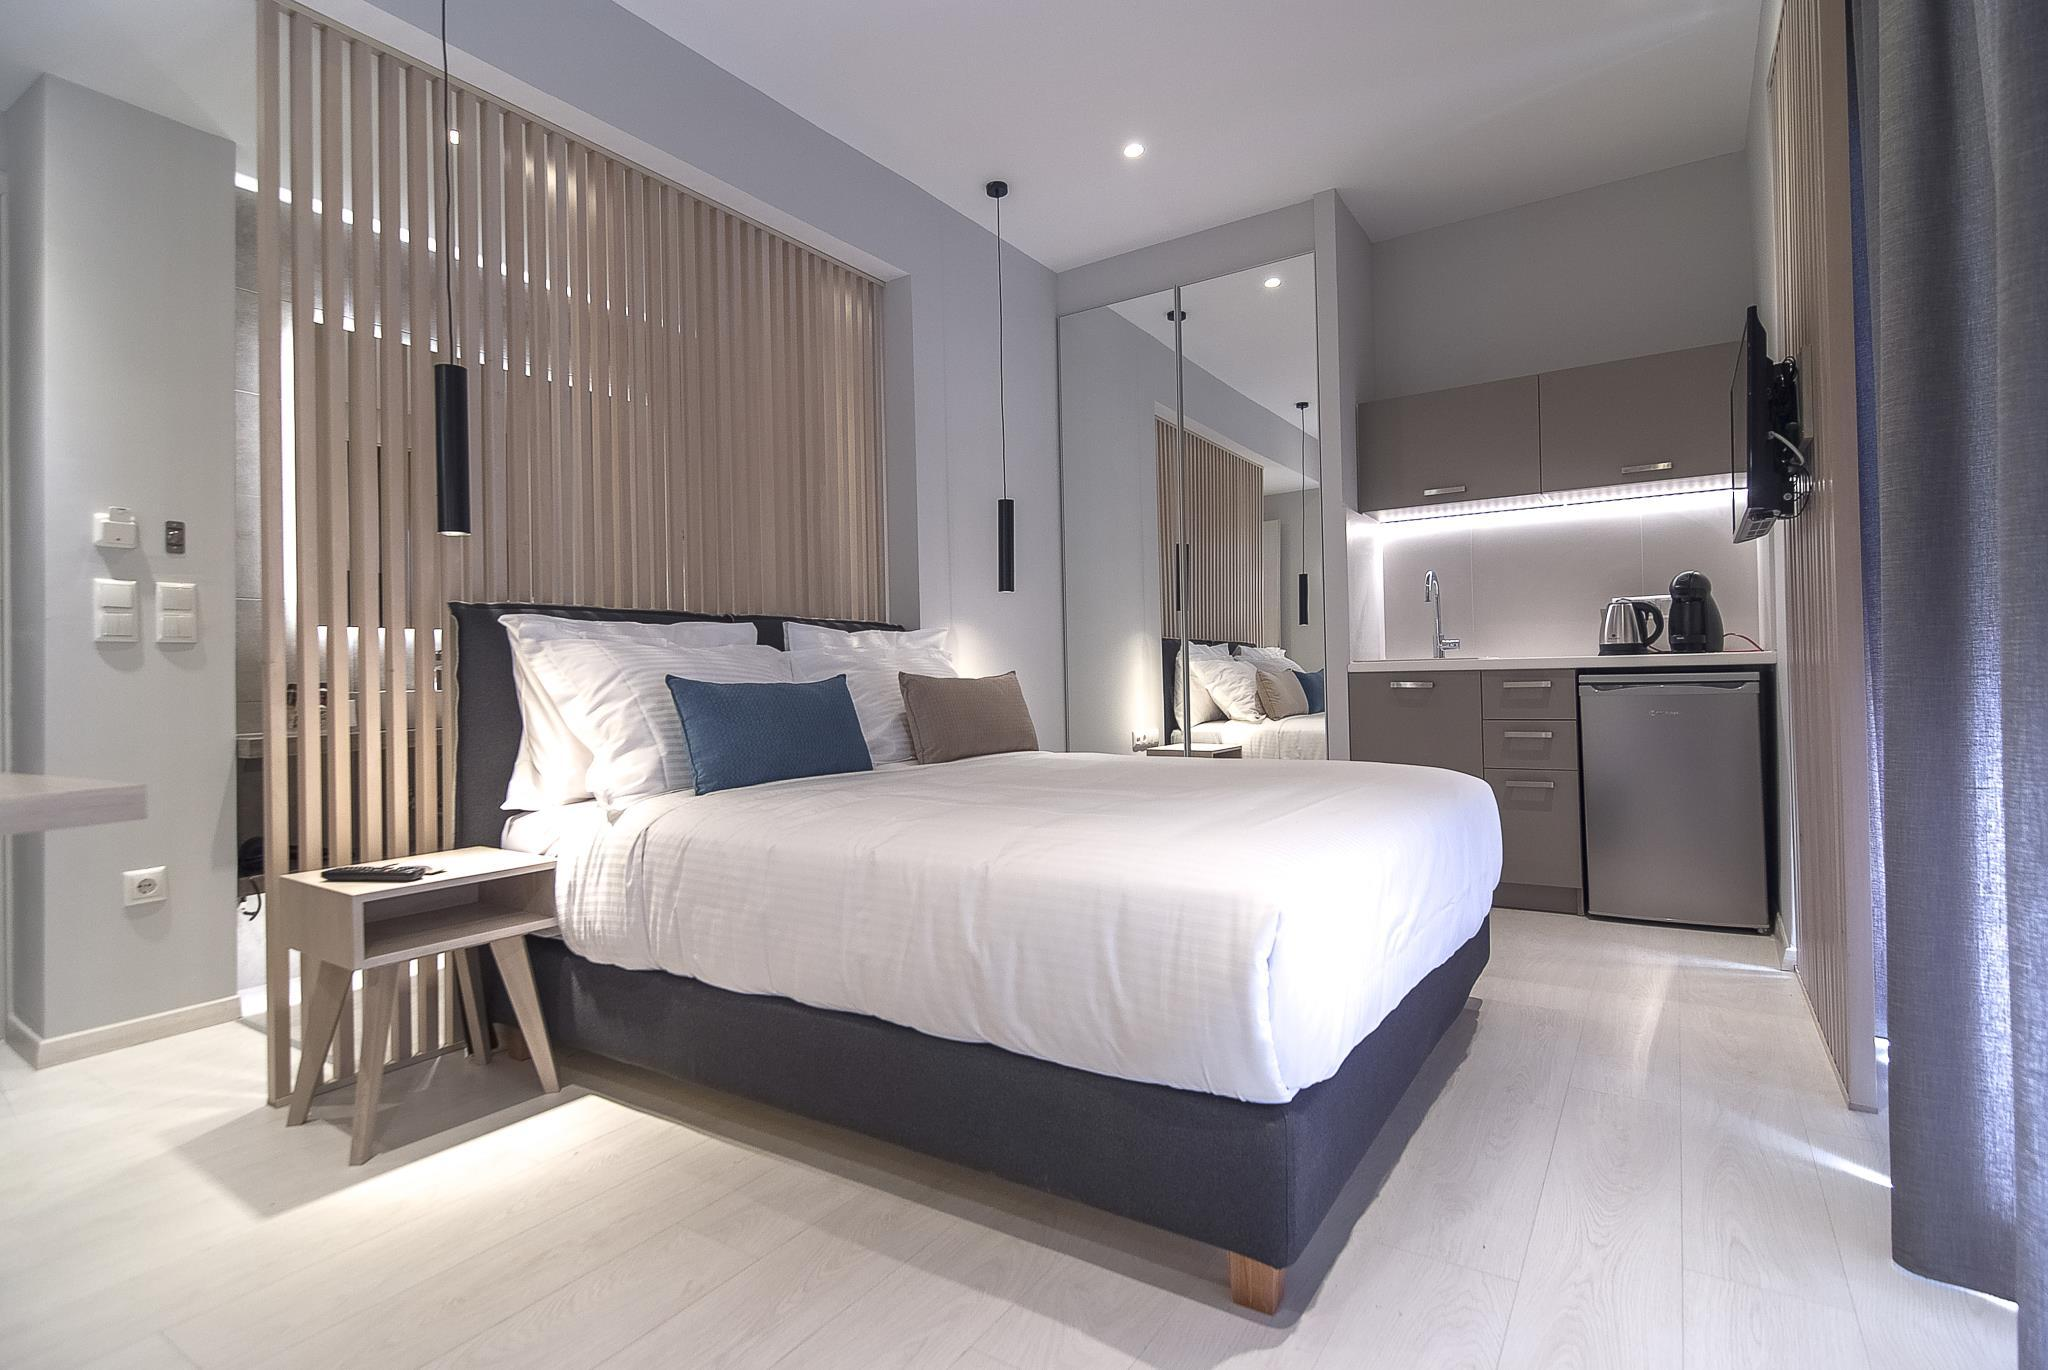 Acropolis Stay Hotel Athens